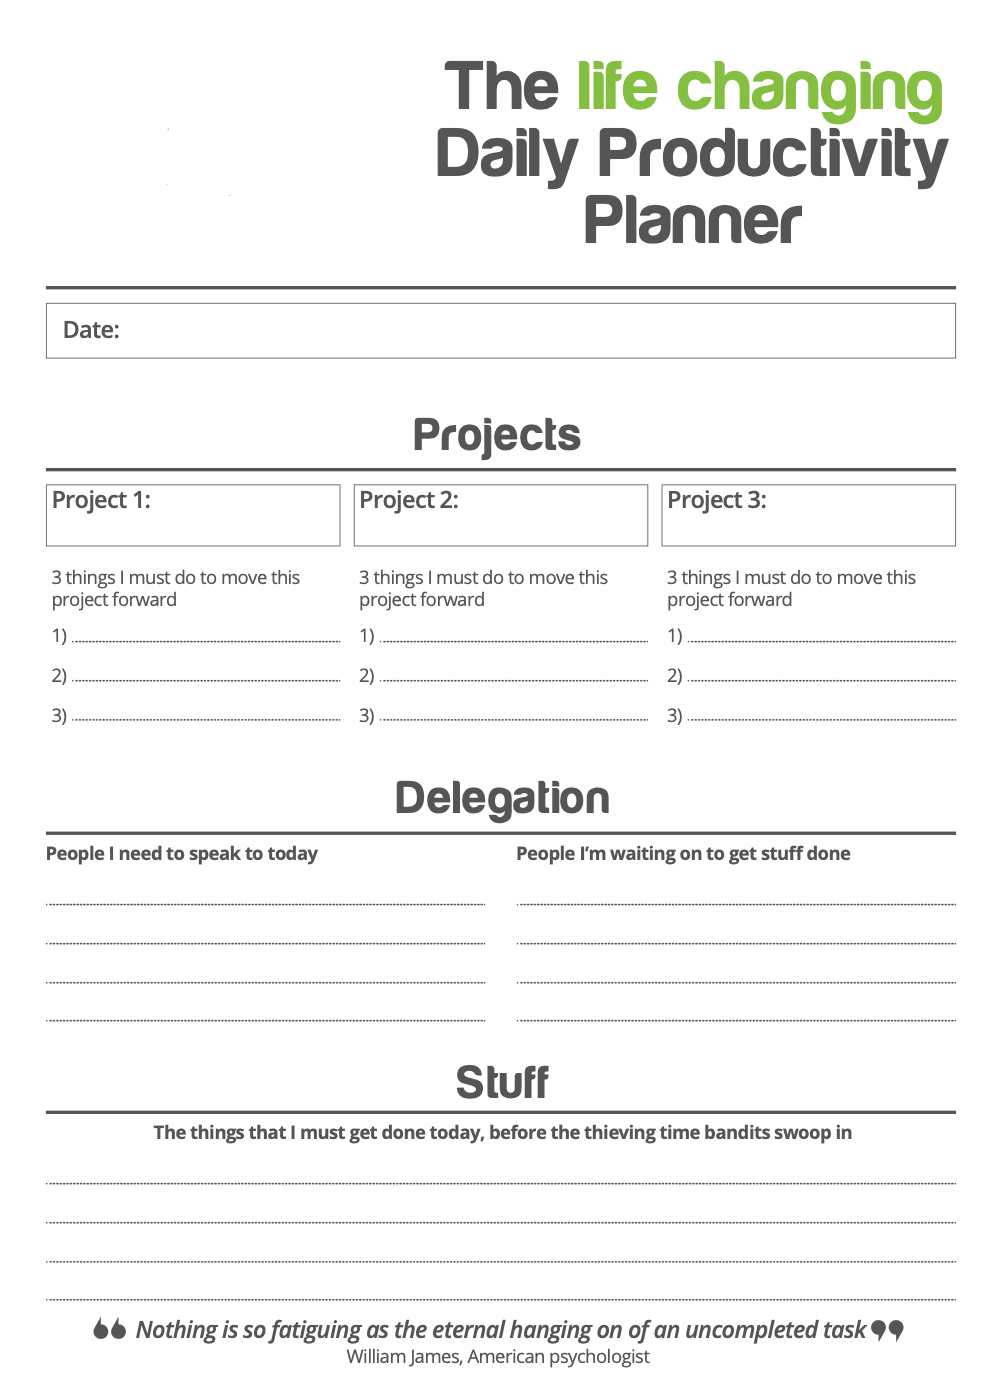 The Life Changing Daily Productivity Planner | Paul Green's MSP Marketing